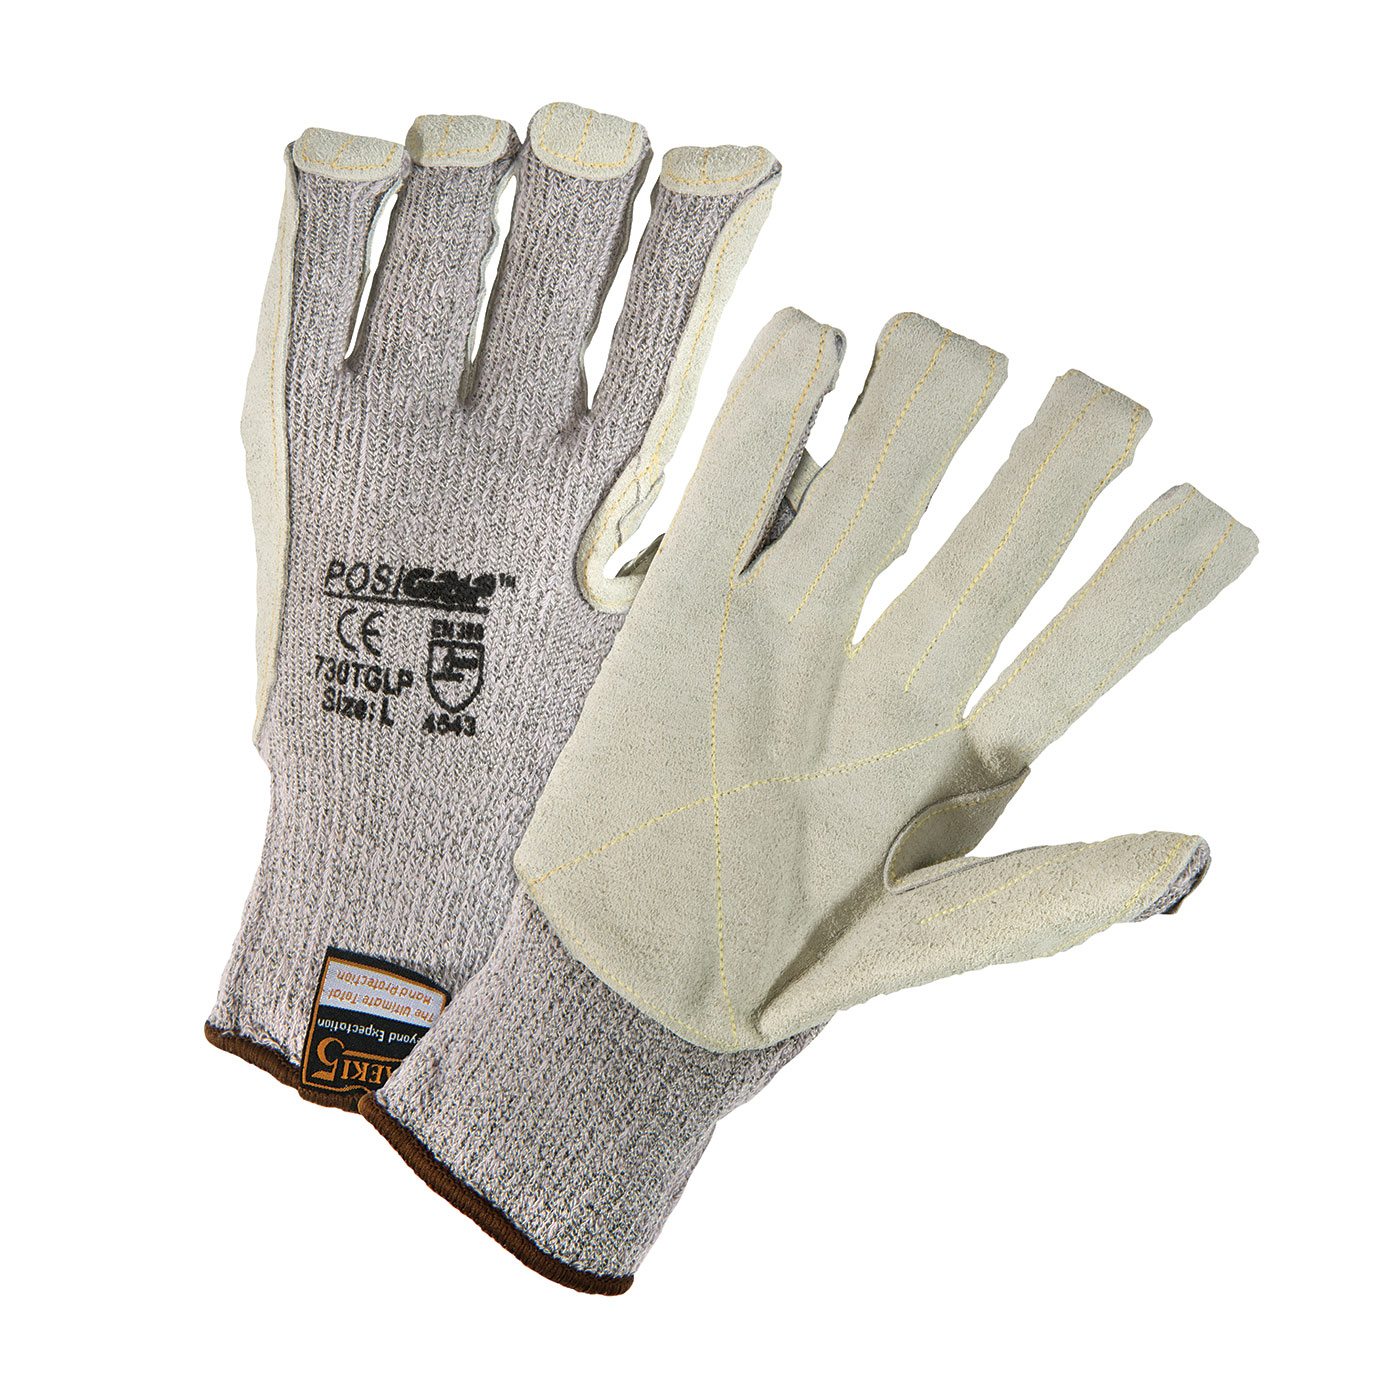 Seamless Knit HPPE Blended Glove with Split Cowhide Leather Palm and Kevlar® Stitching, Gray, M